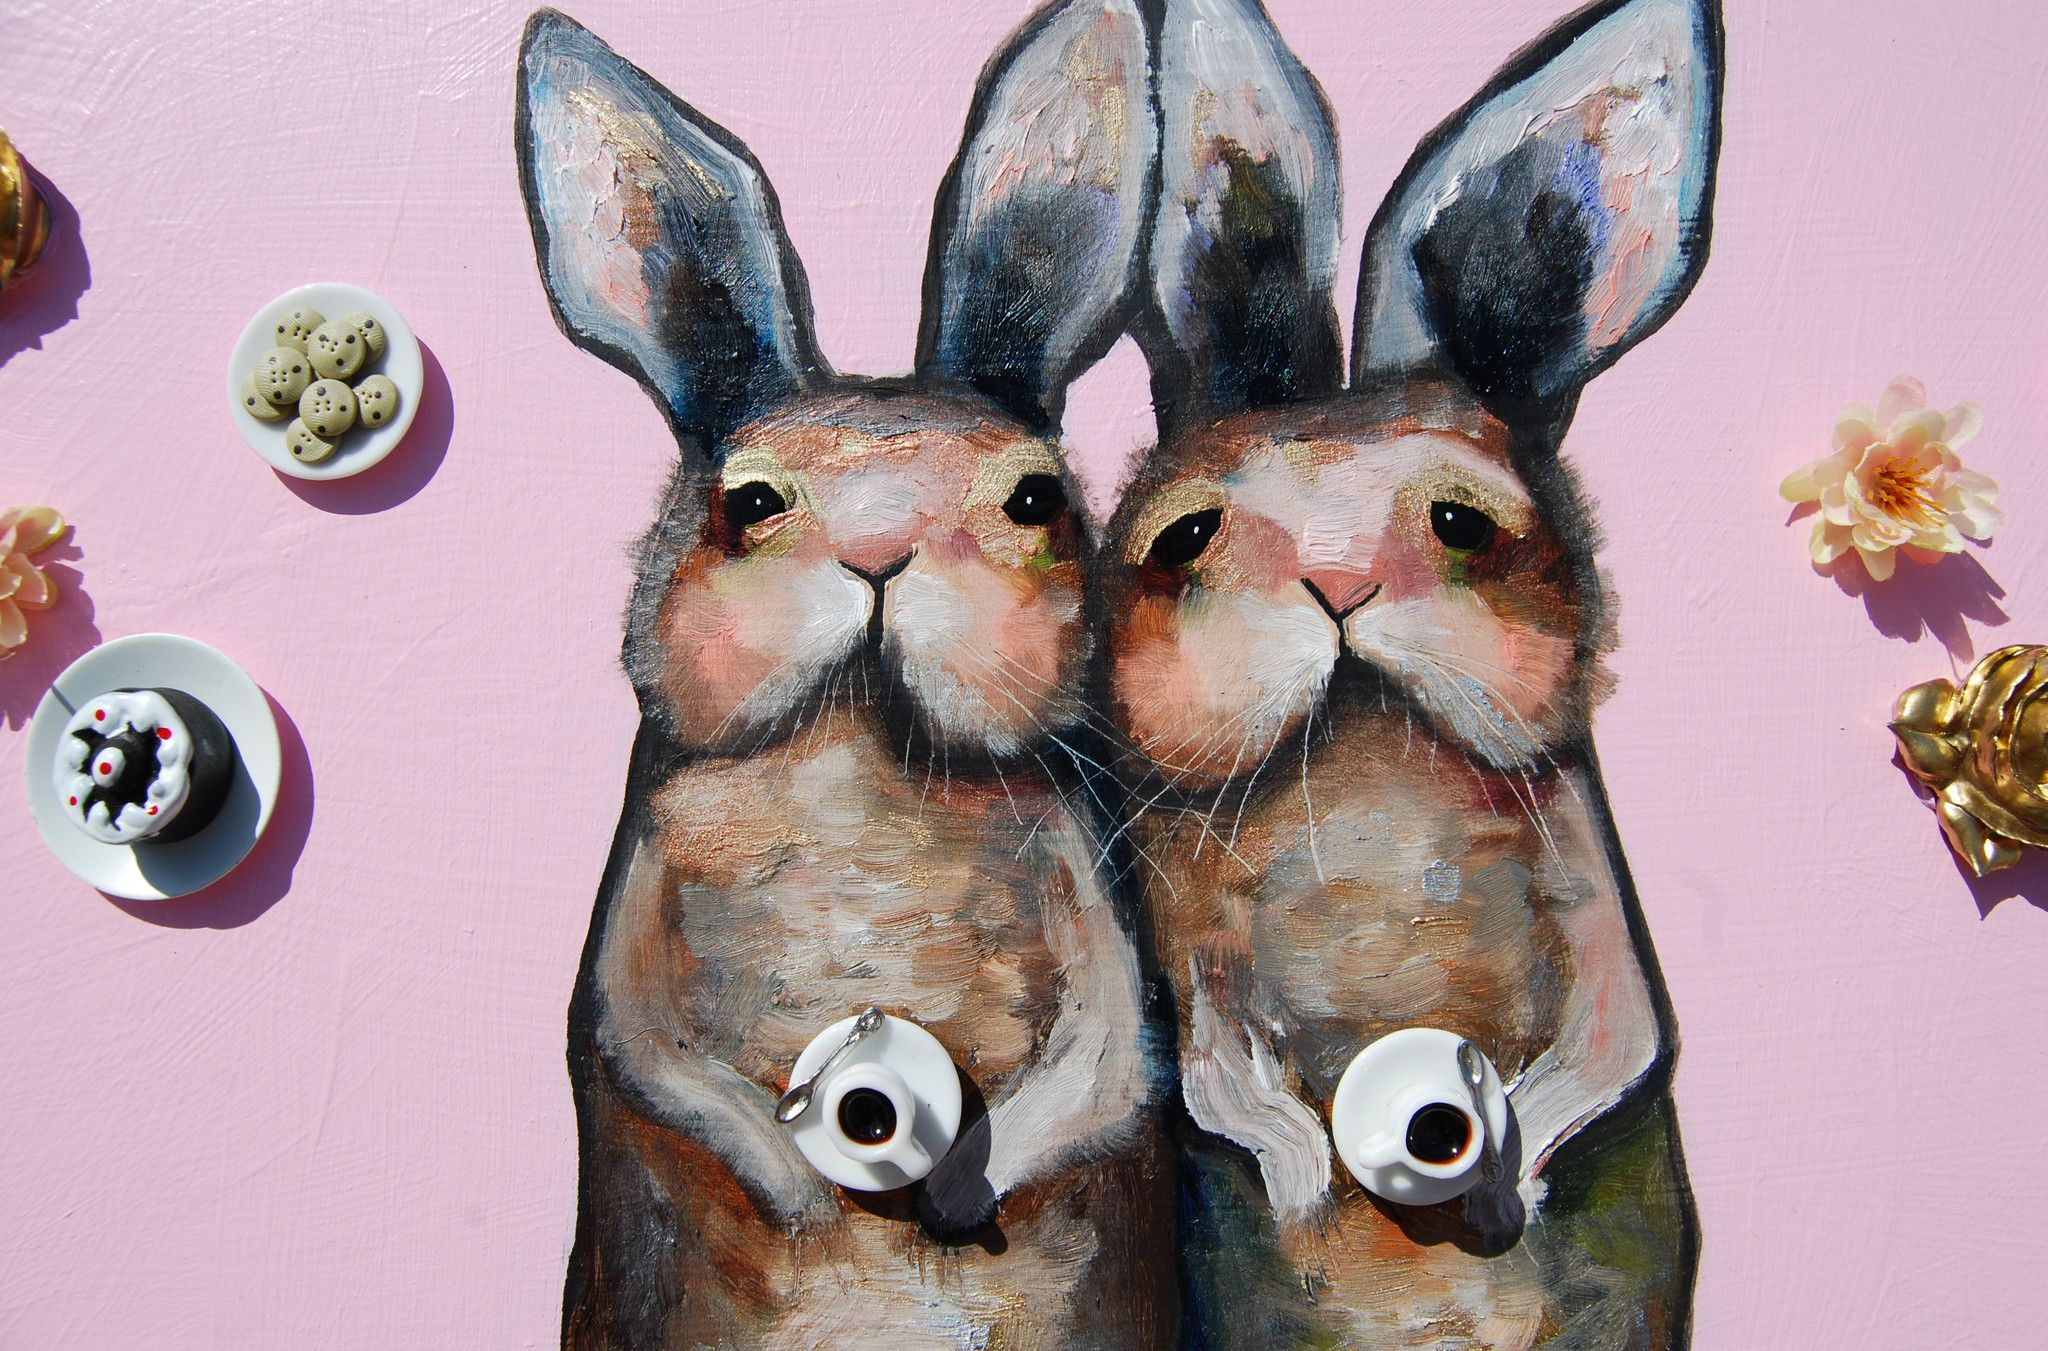 """2014 36"""" x 9.75"""" Oil, acrylic and found objects.Two bunnies meeting for coffee and cakes with thick oil paint and dollhouse miniatures."""